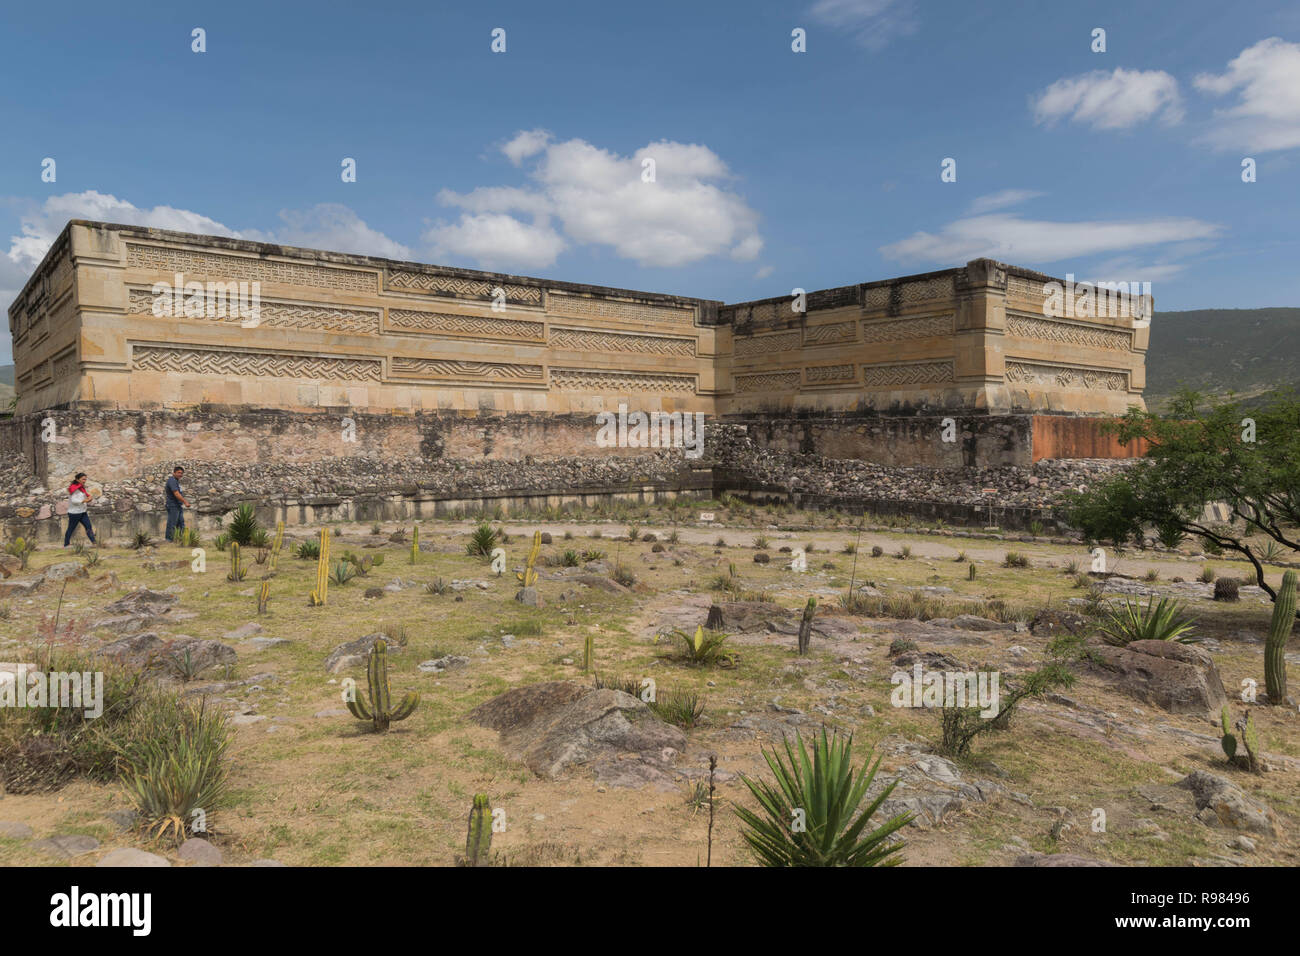 Ruins at Mitla, with dry landscape, many cactus and a cloudy blue sky, in Oaxaca, Mexico - Stock Image